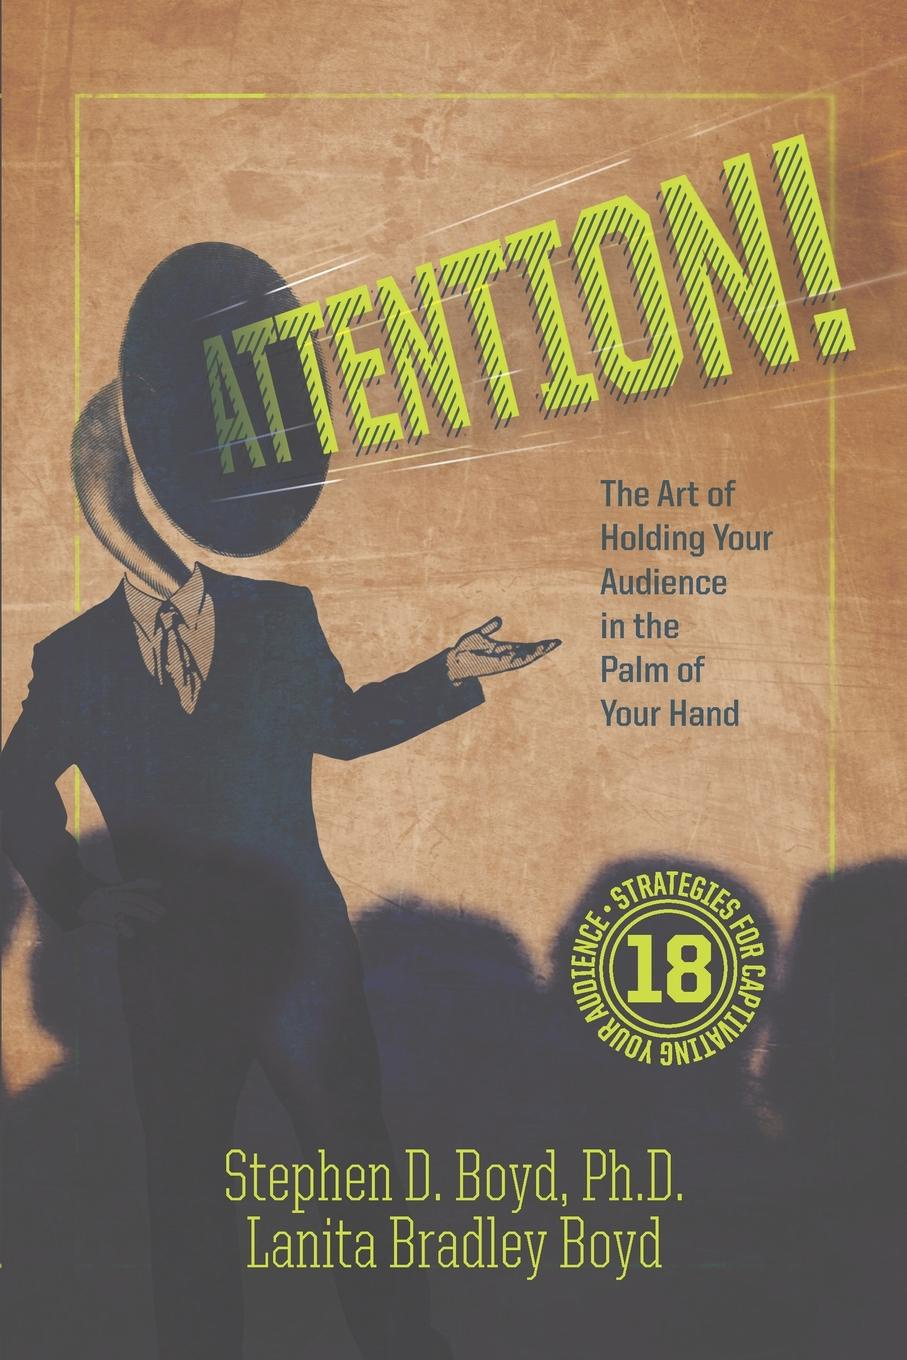 Stephen D. Boyd PhD, Lanita Bradley Boyd ATTENTION. The Art of Holding Your Audience in the Palm of Your Hand the art of entertaining relais and chateaux